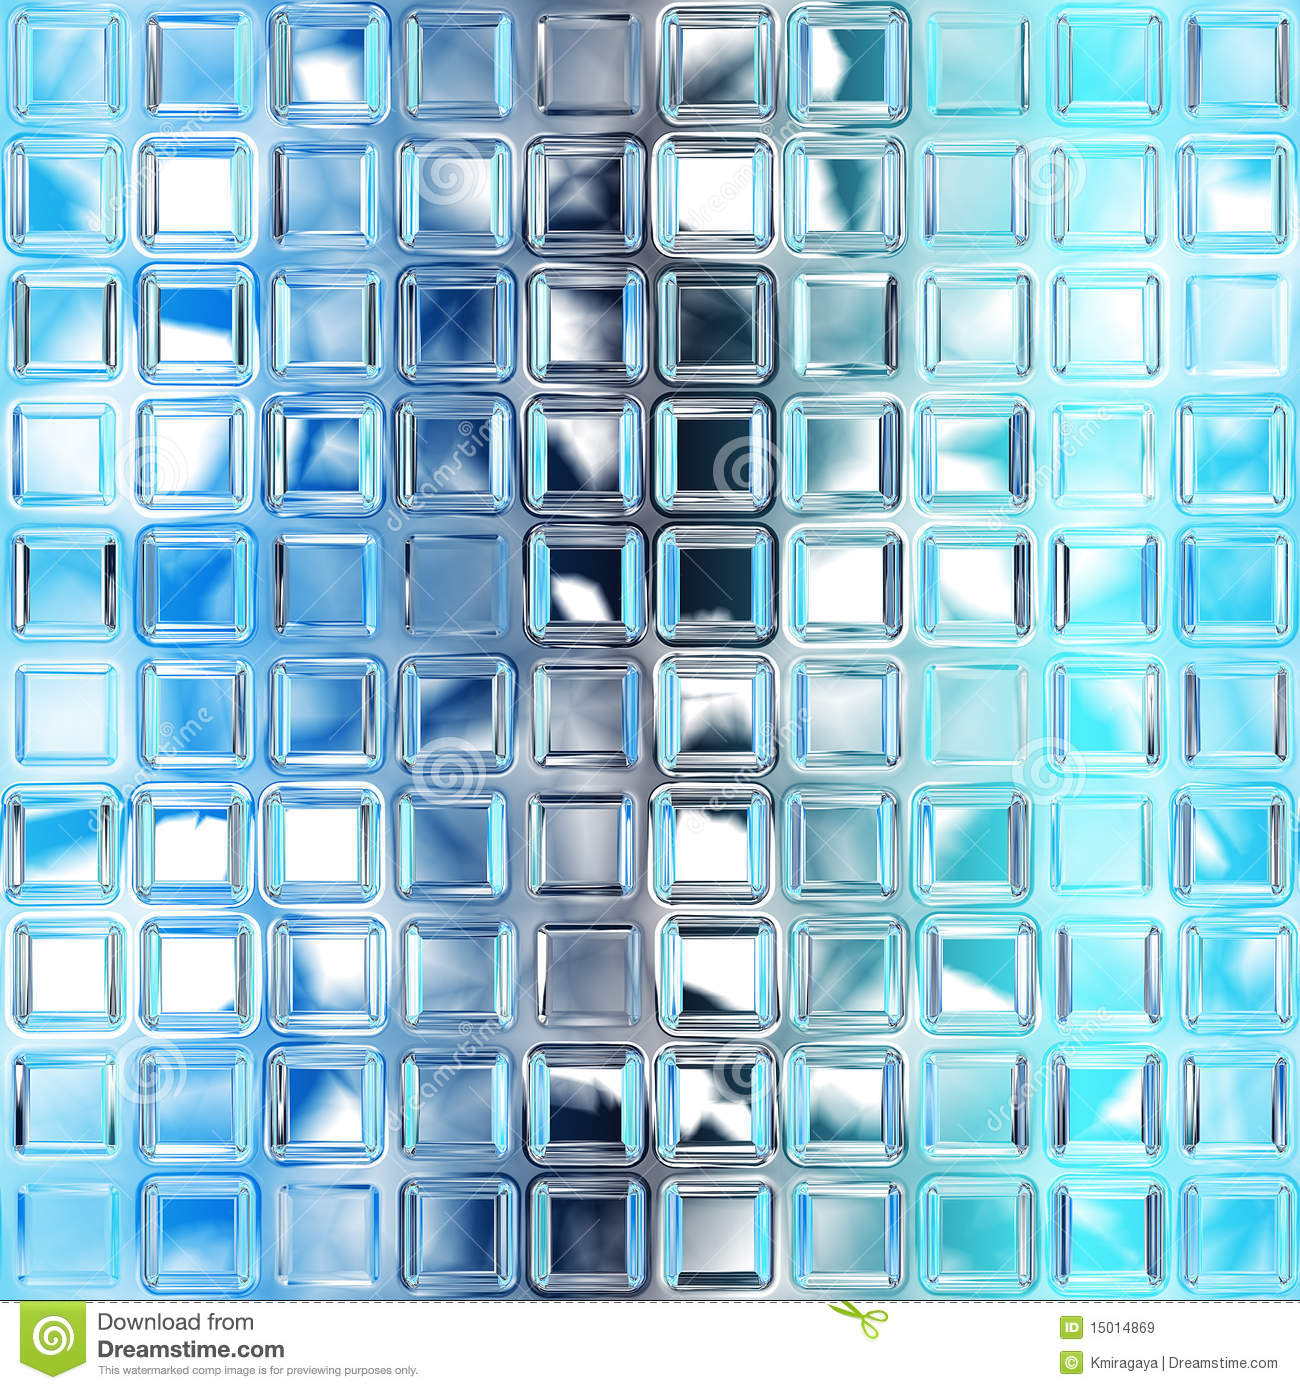 Seamless Blue Glass Tiles Texture Royalty Free Stock